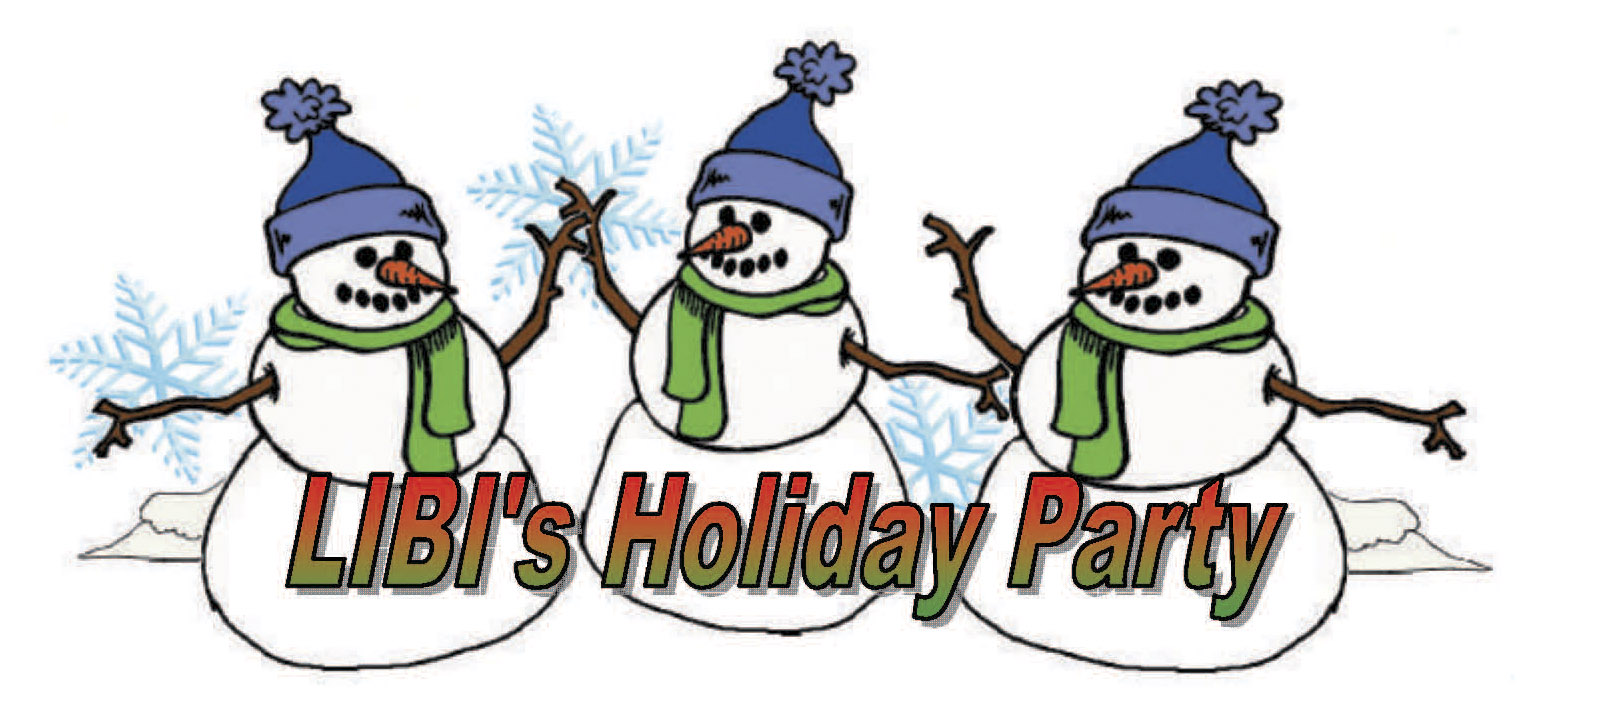 Holydays clipart staff party Party Clip Download Clip Holiday